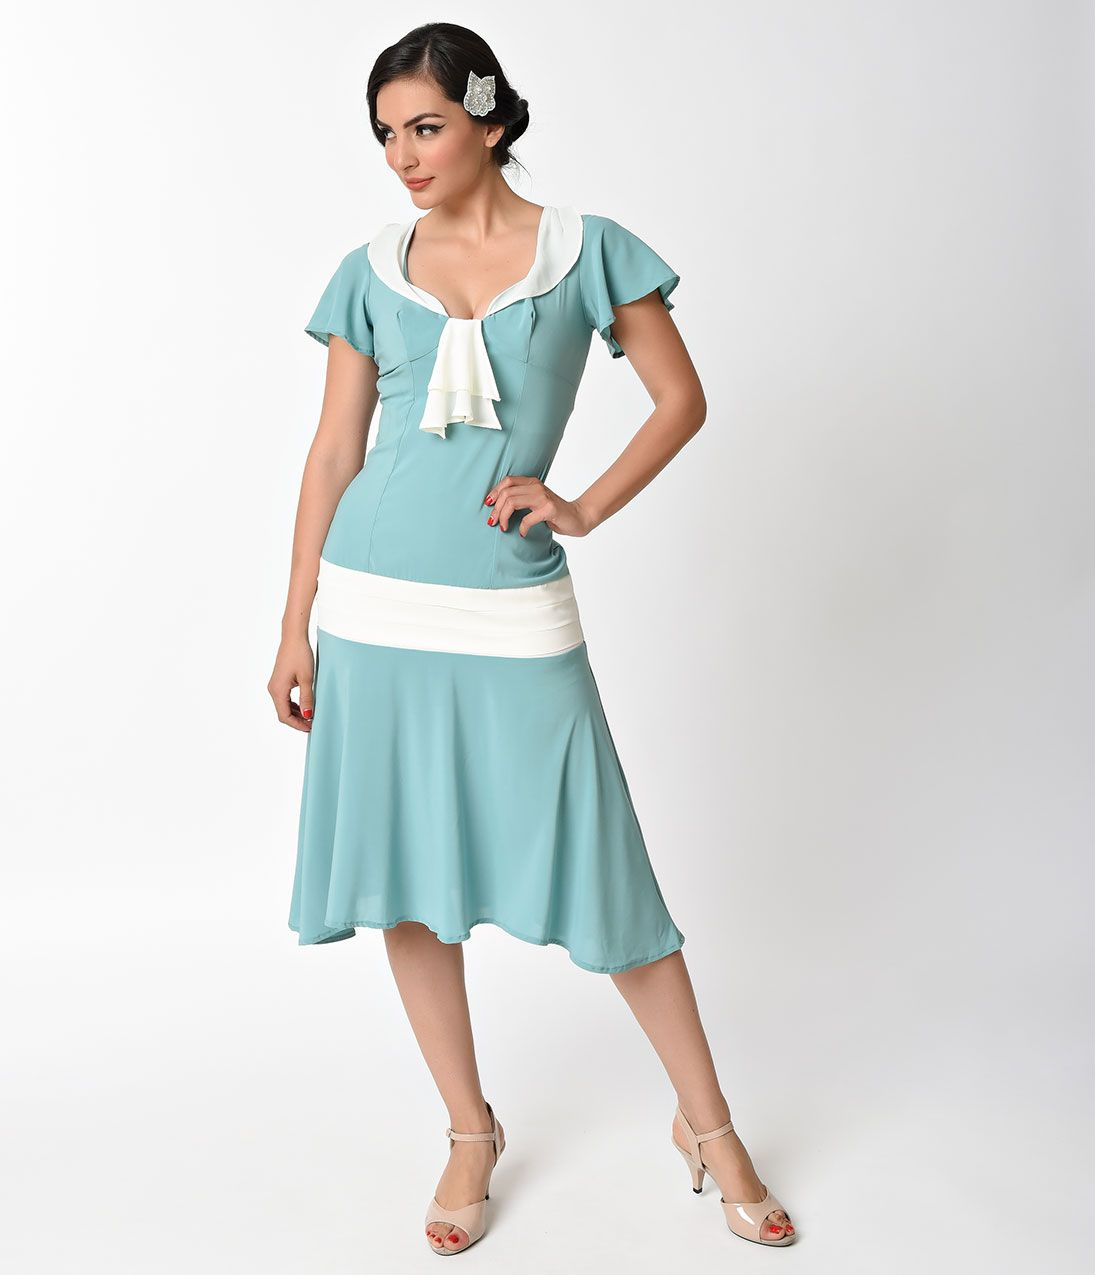 8 Easy 1920s Costumes You Can Make | 1920s style, Unique vintage ...